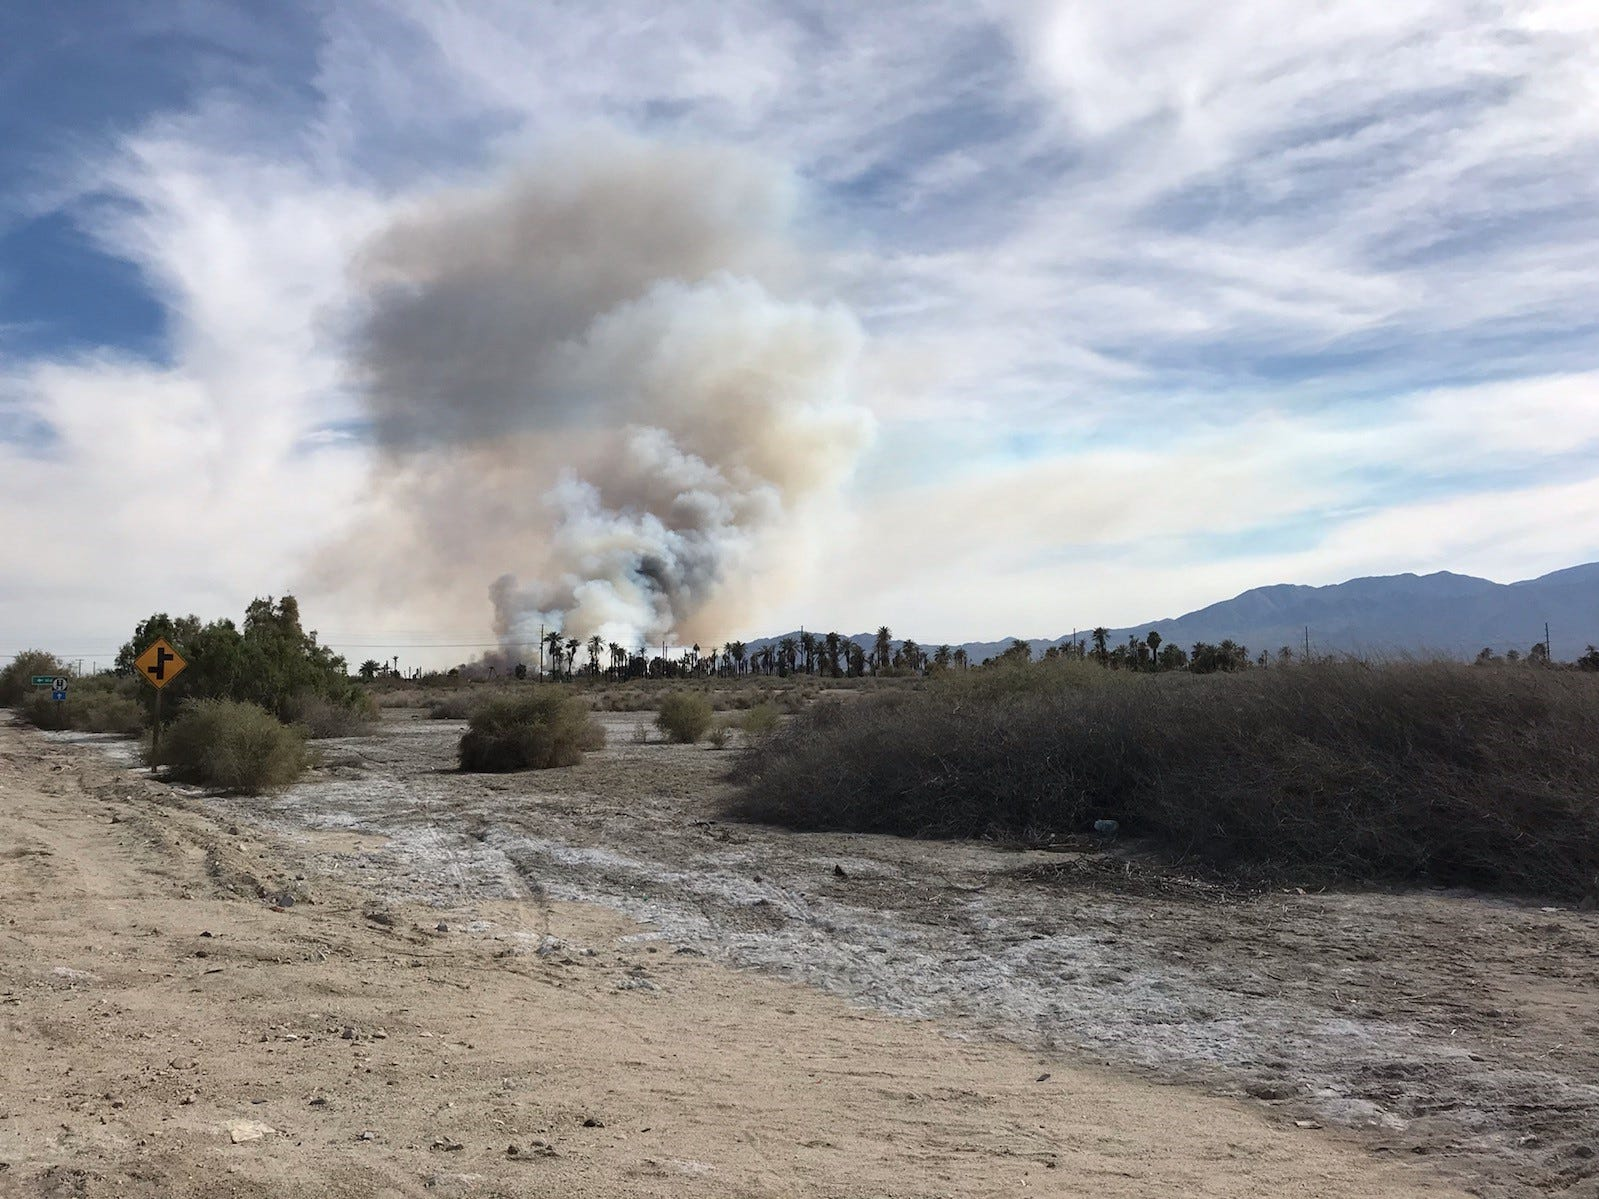 A fast-moving brush fire broke out Friday afternoon at Lincoln Street and Avenue 68 in Mecca, officials said.